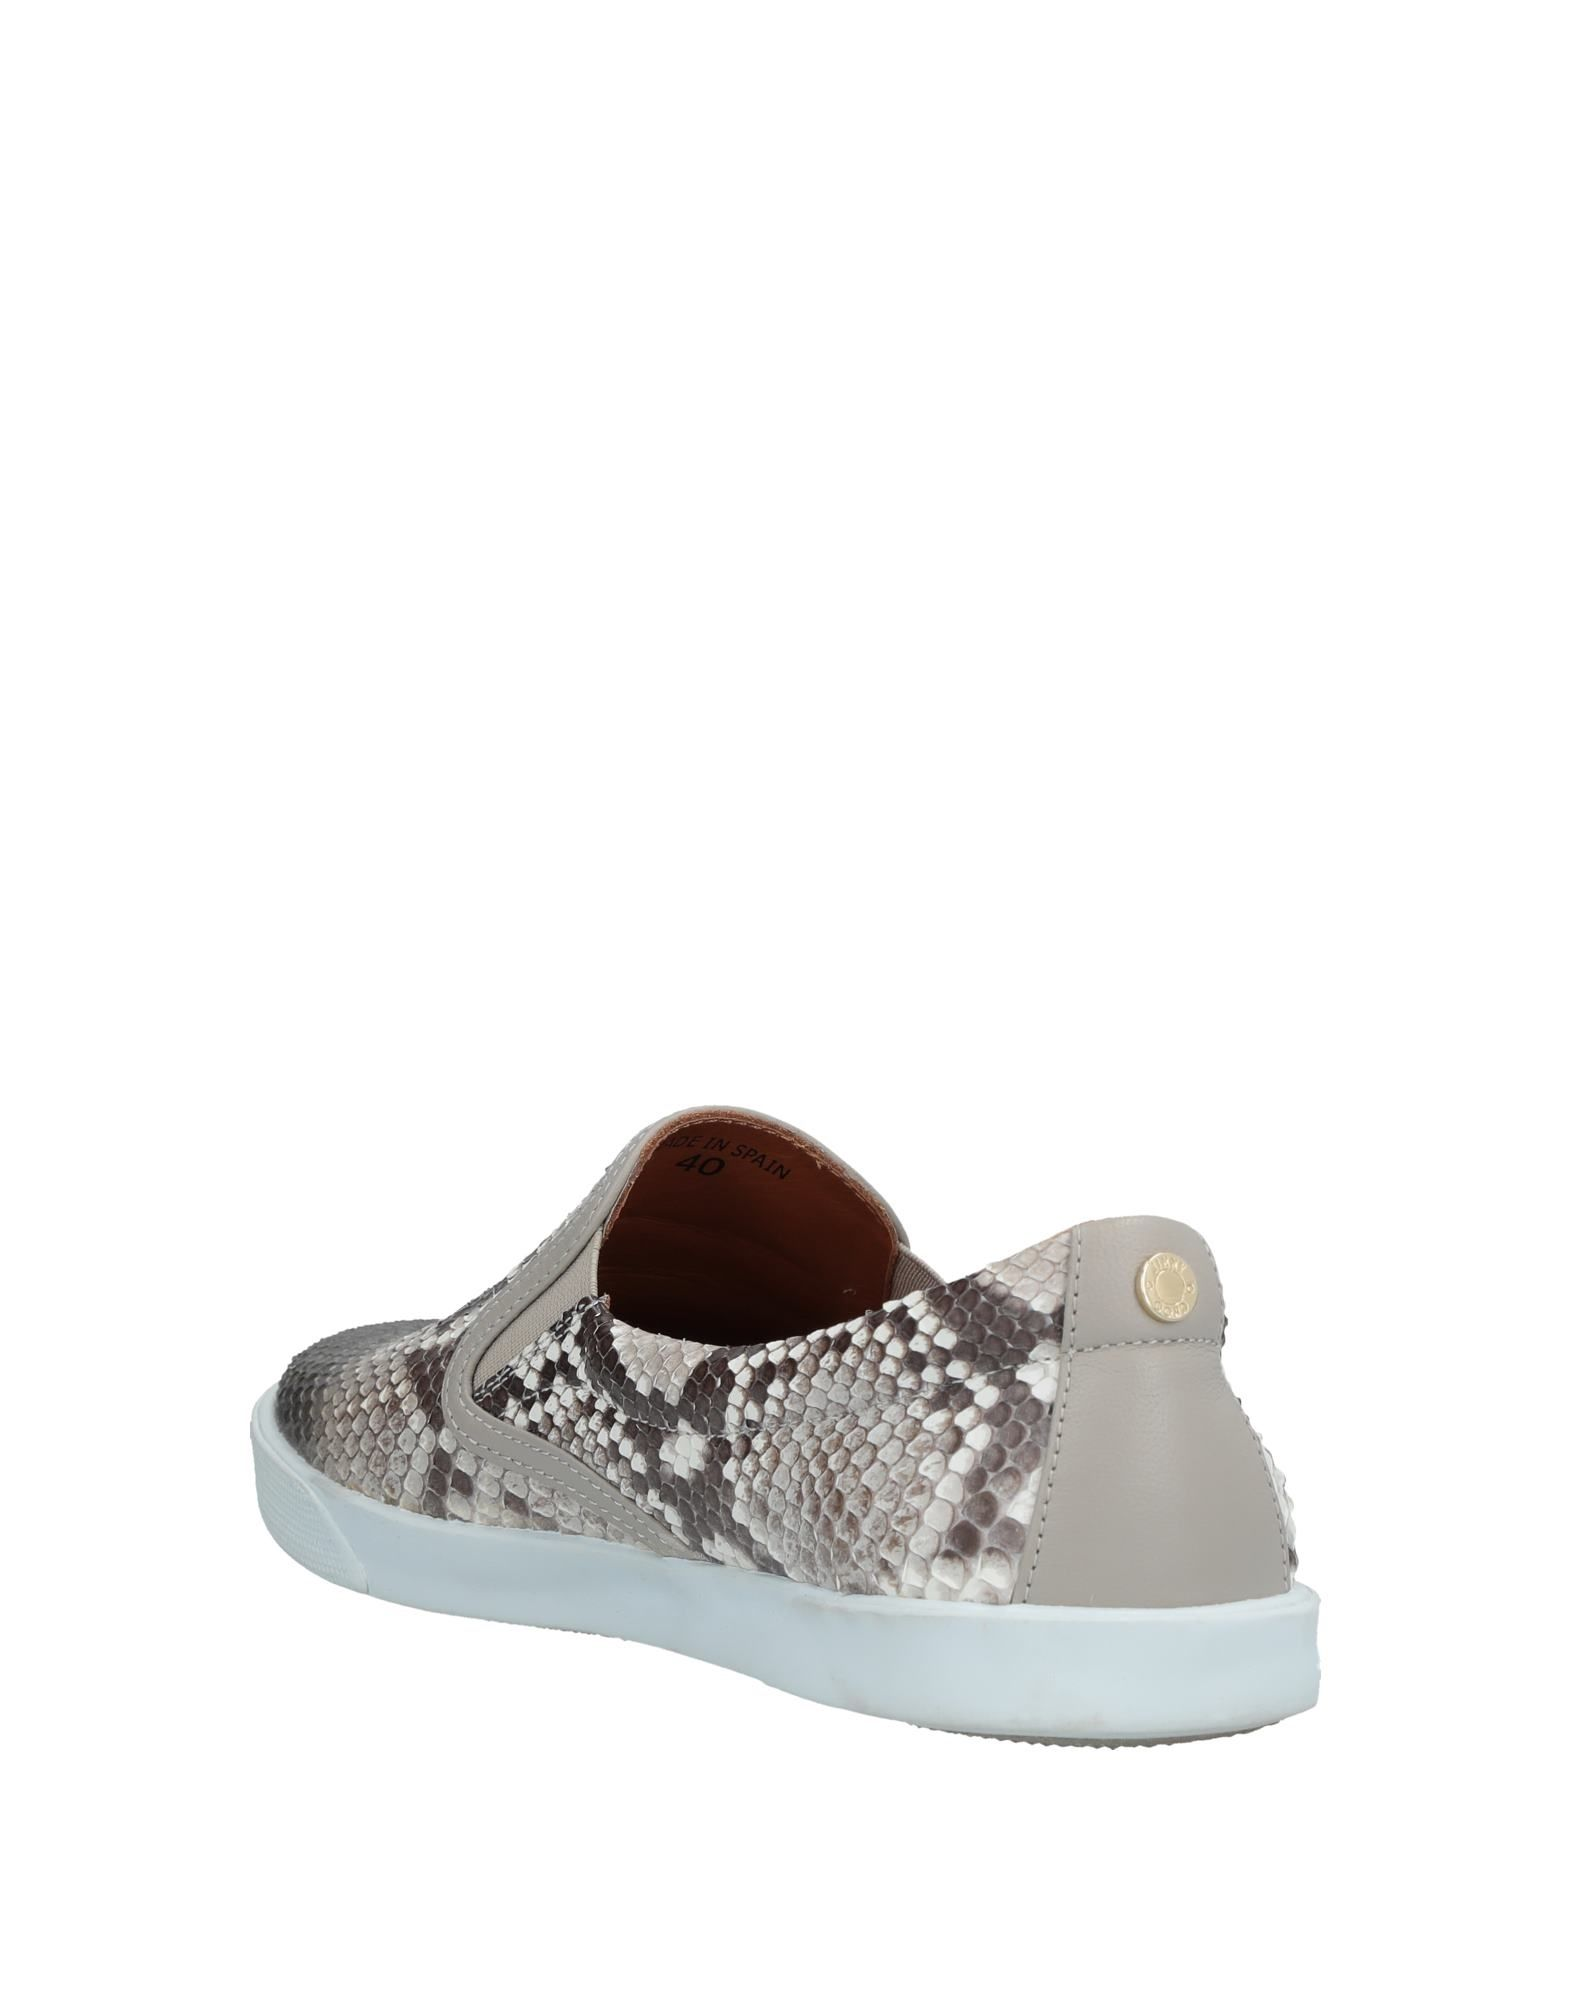 Jimmy Choo Sneakers - Women Jimmy Choo Sneakers Sneakers Sneakers online on  United Kingdom - 11532940WF ad42d0